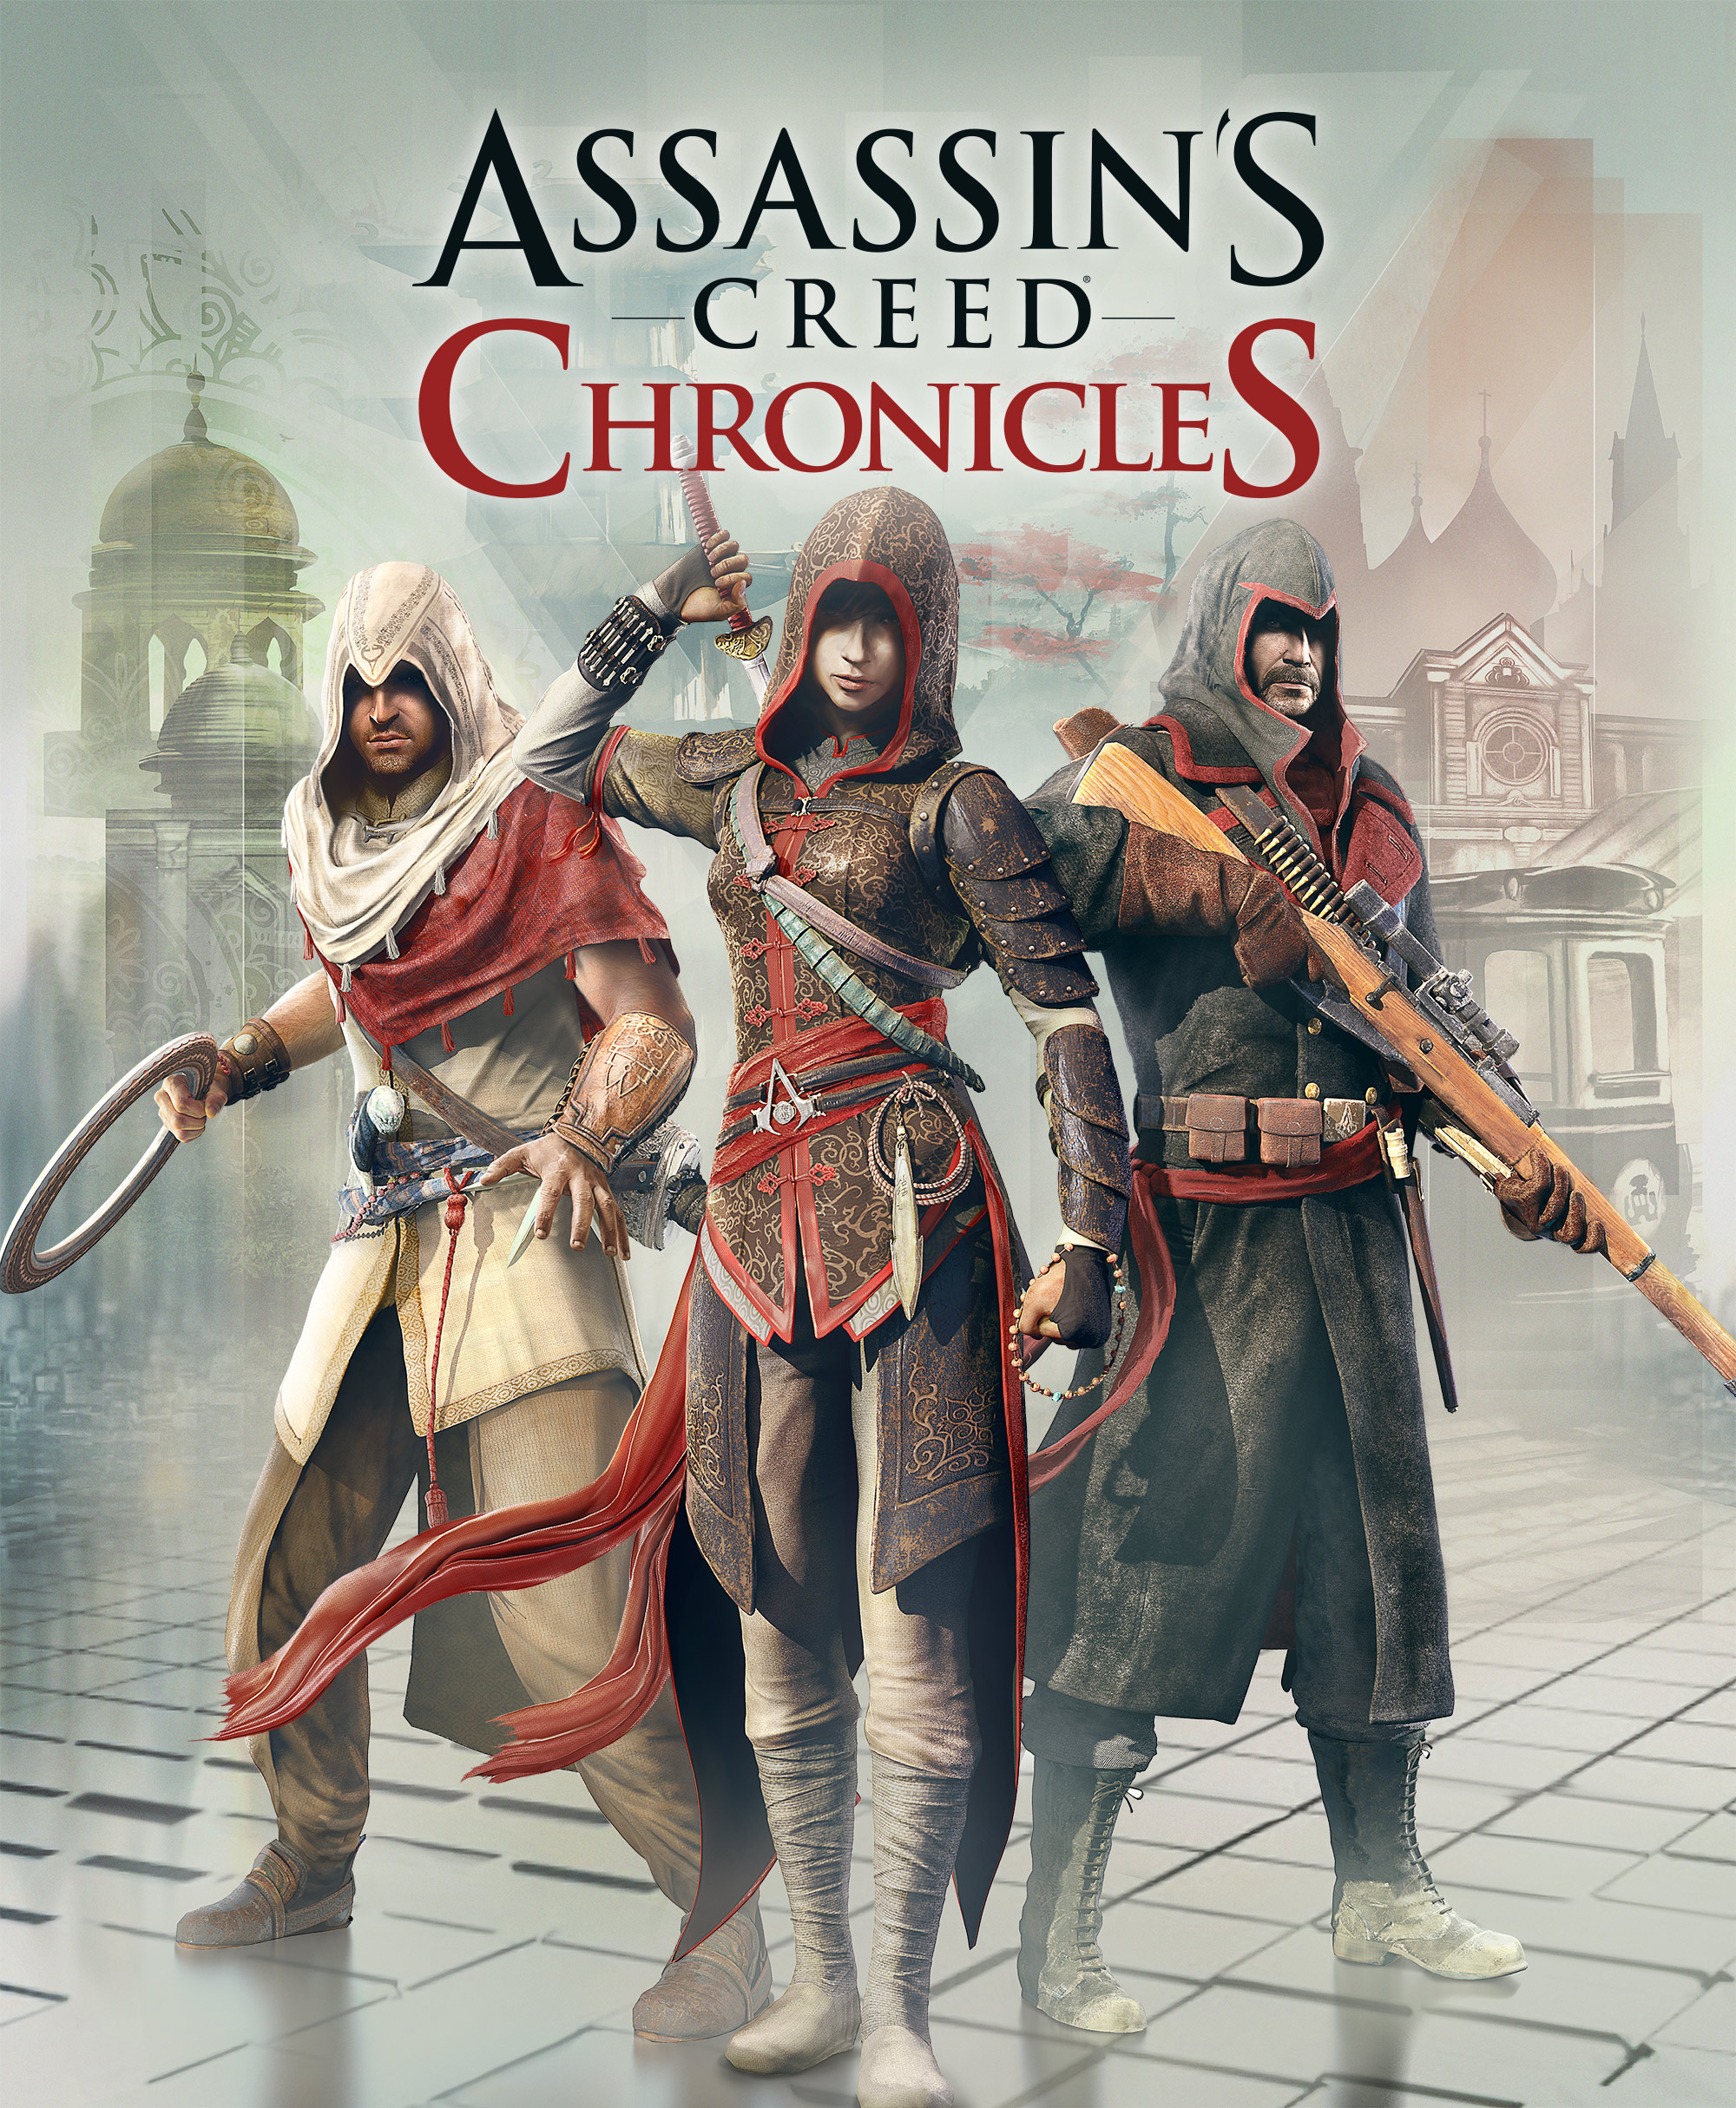 New Assassin's Creed games to take place in China, Russia and India - Nerd Reactor